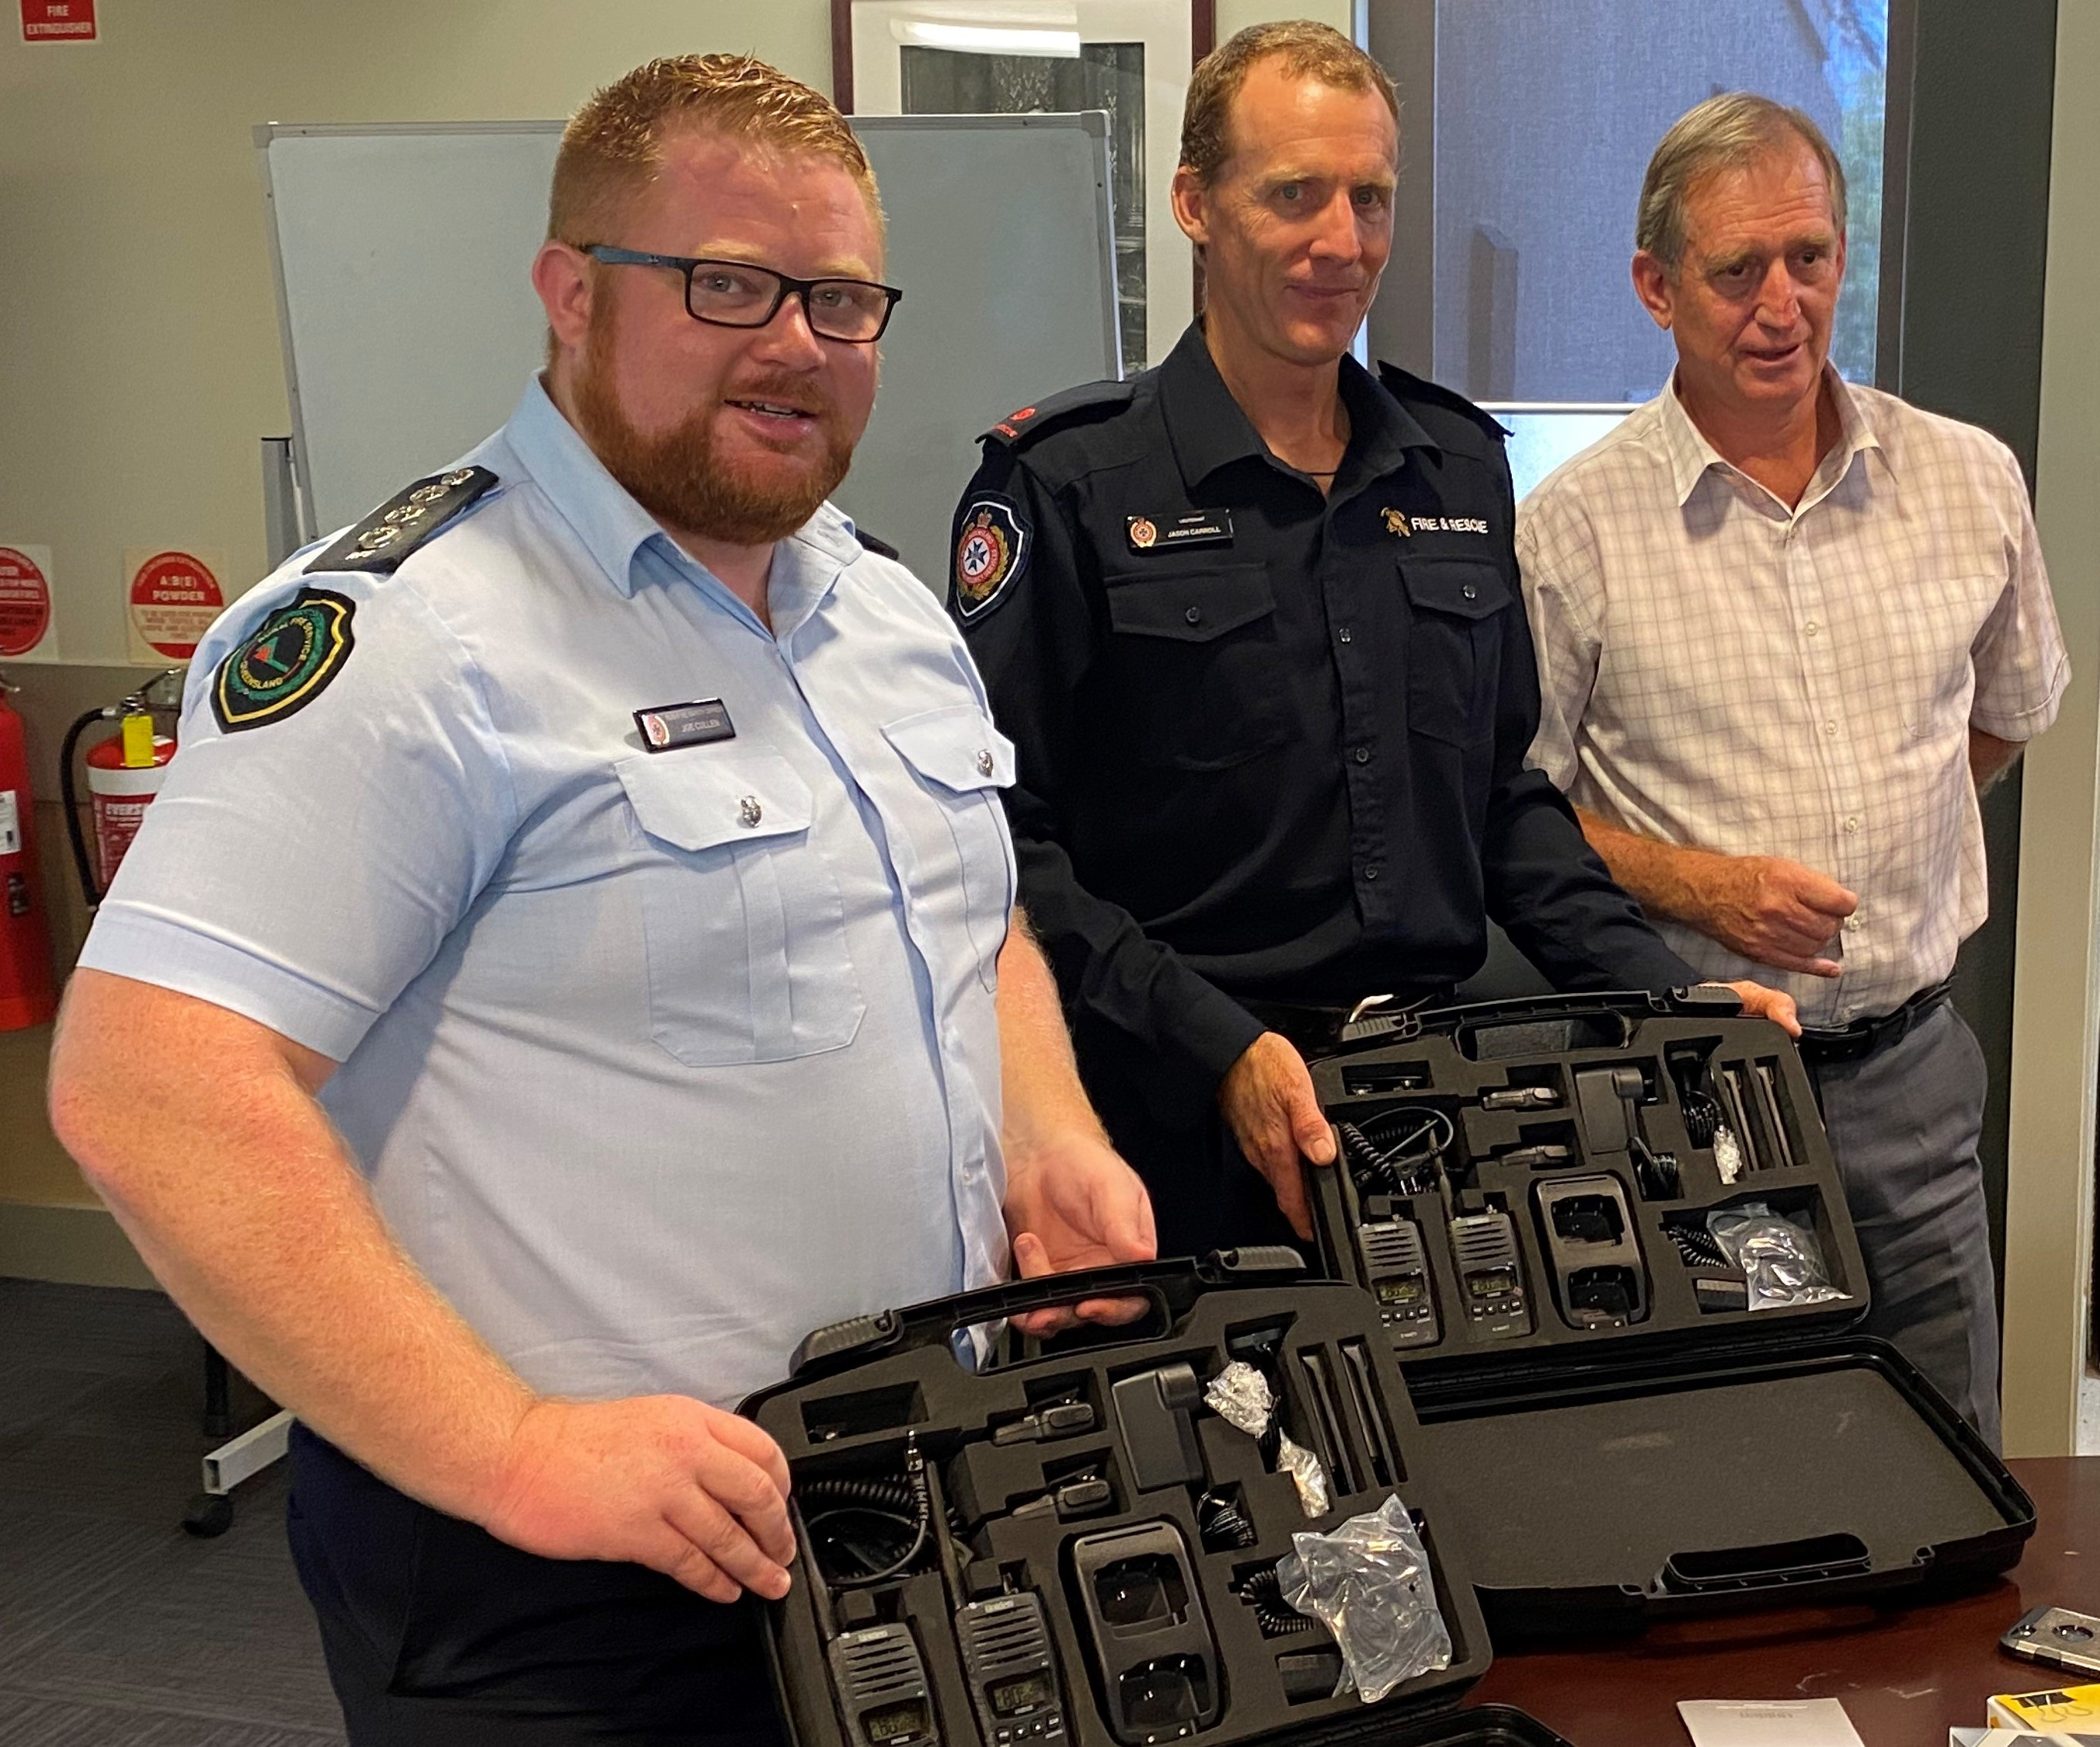 The radios were presented by Cr Scott at a recent meeting of the LDMG to Joe Cullen, Acting Inspector, Area Director of Cairns Peninsular Area Rural Fire Service, and Jason Carroll Captain of the Cooktown Auxiliary Fire Brigade.